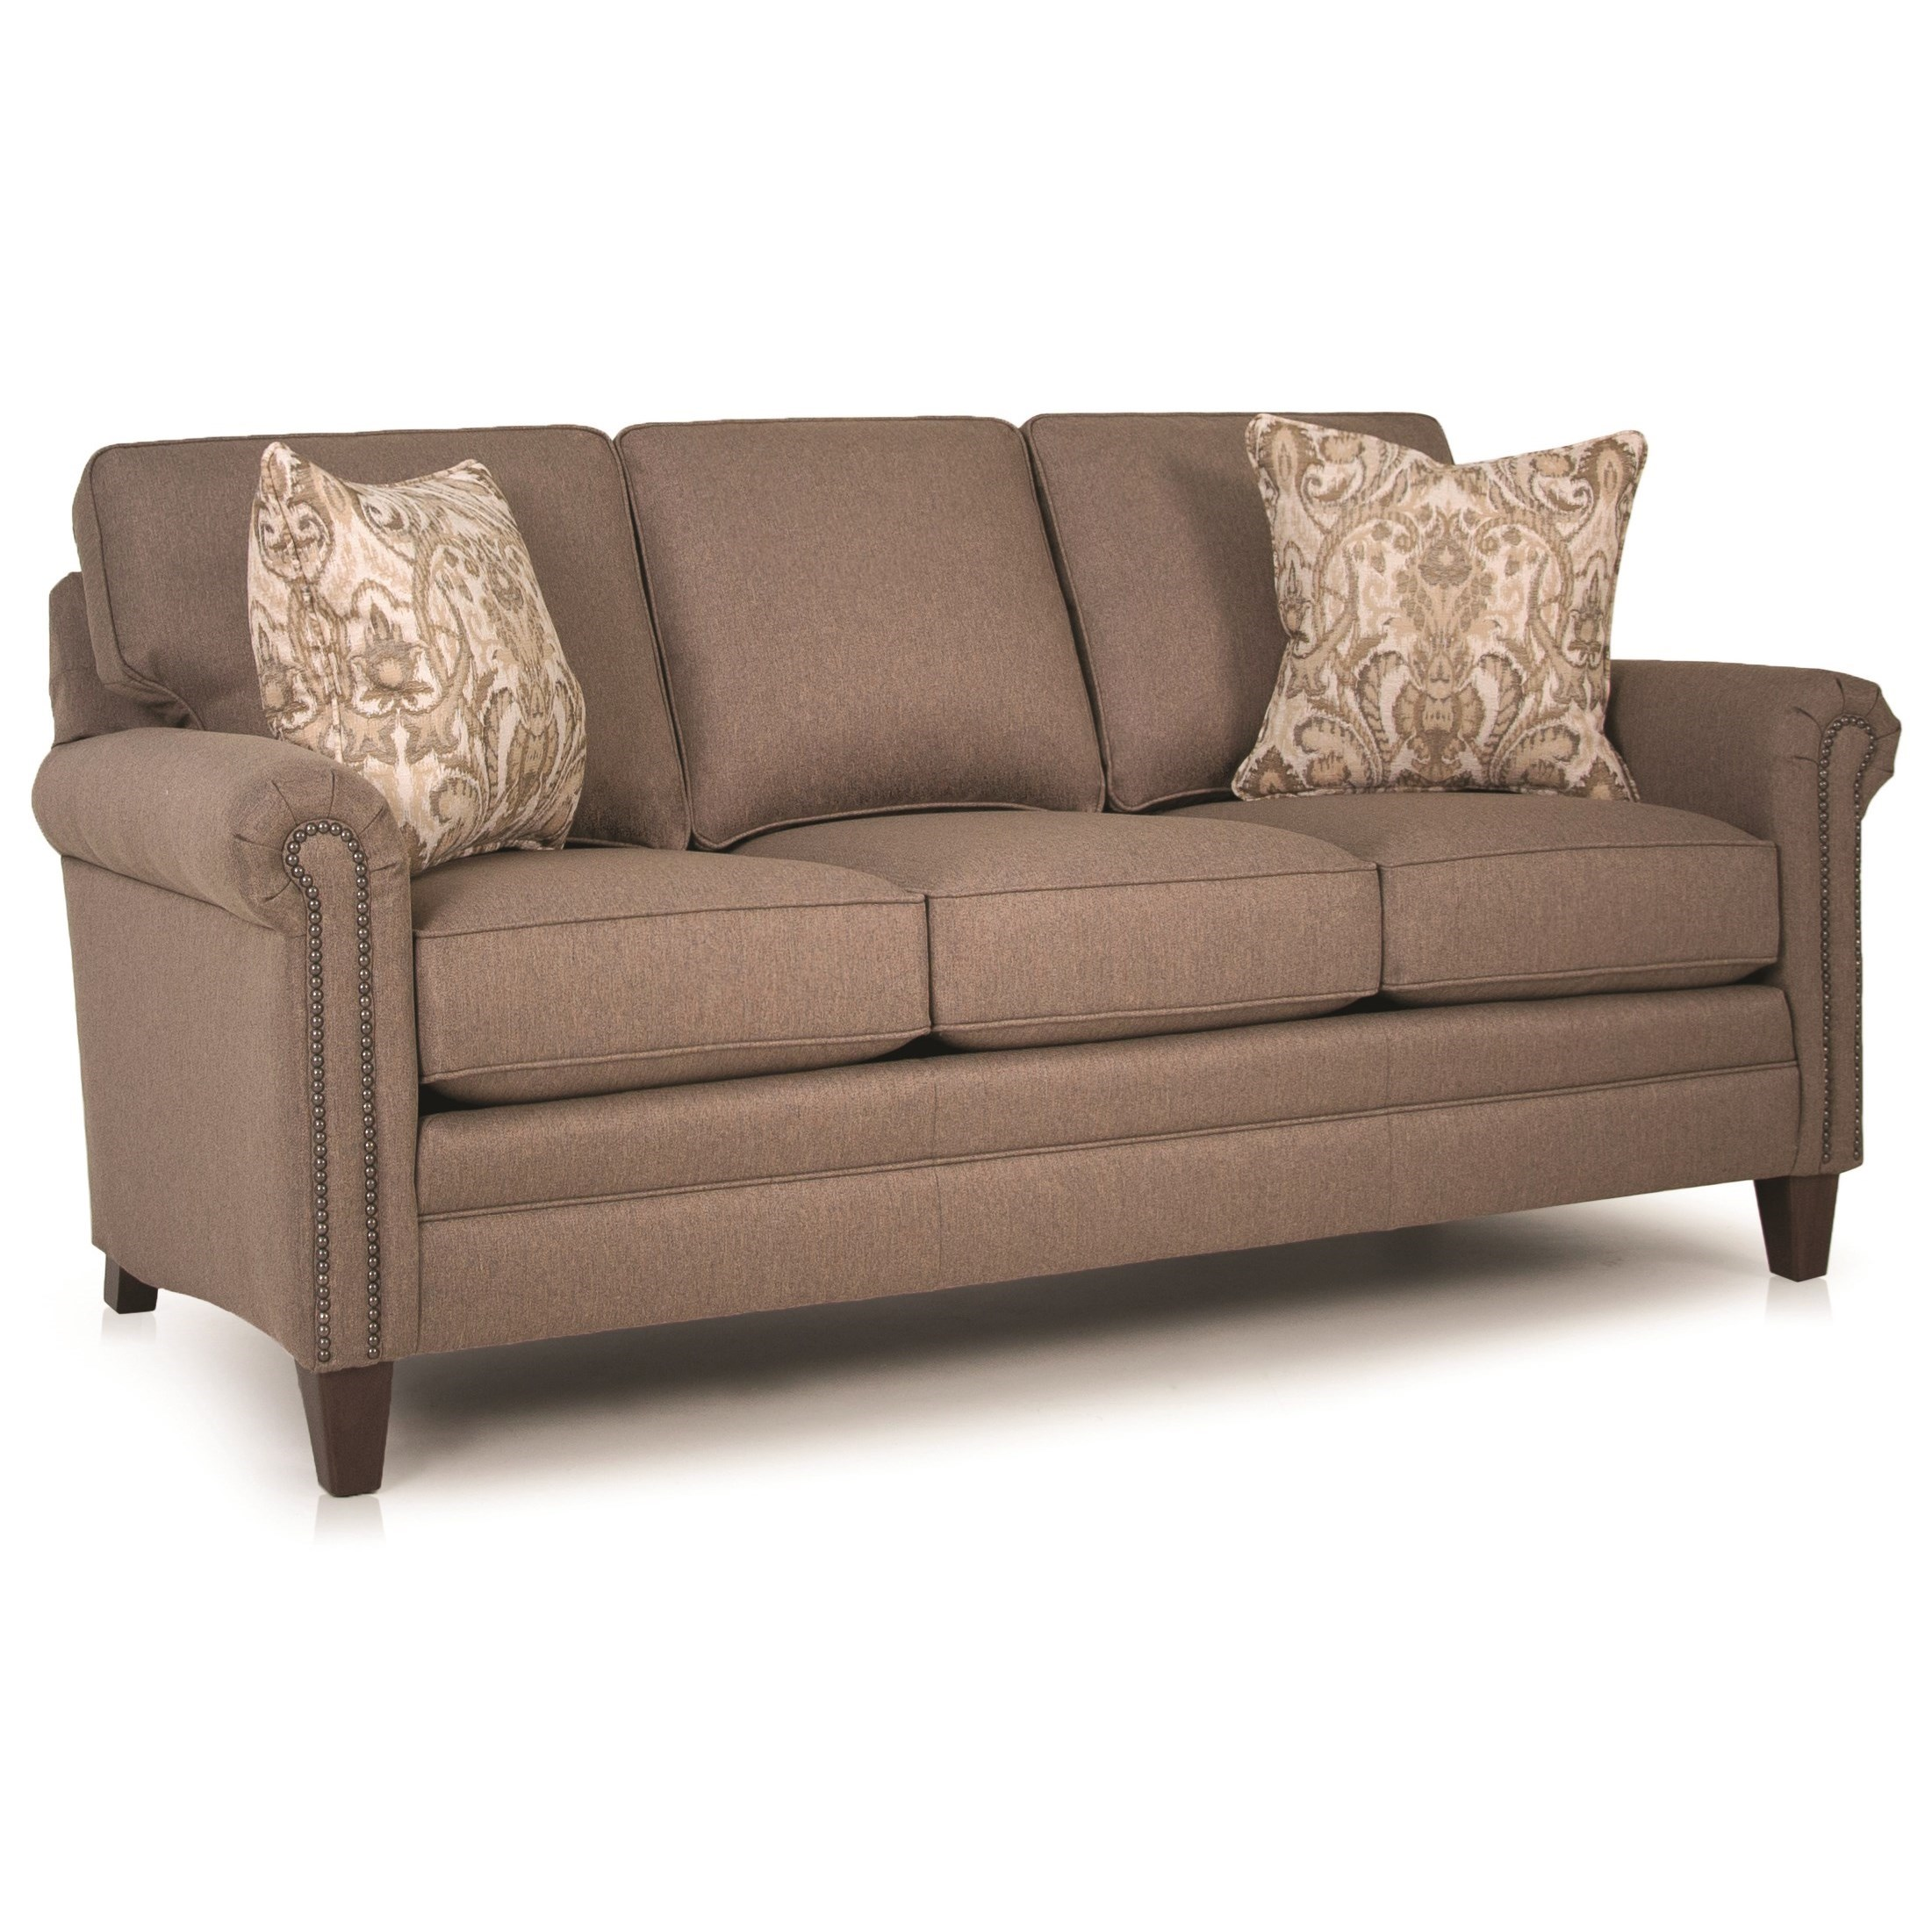 234 Mid-Size Sofa by Smith Brothers at Westrich Furniture & Appliances